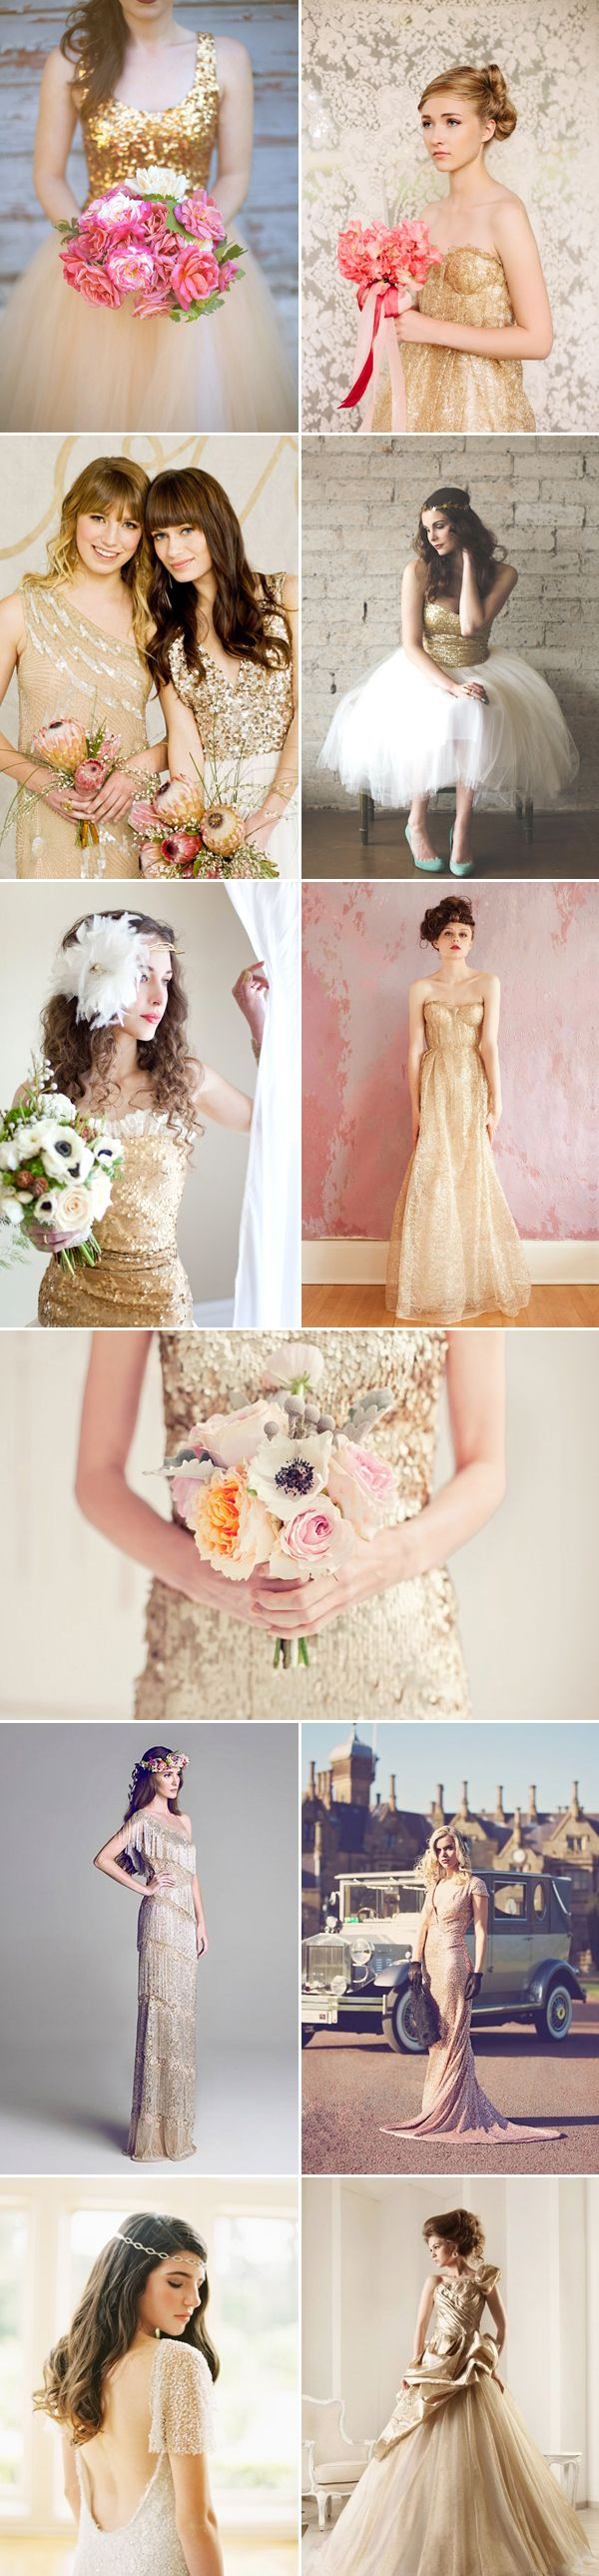 27 Beautiful Colored Wedding Dresses - gorgeous gold I love the bottom left one and the one second from the bottom on the right.